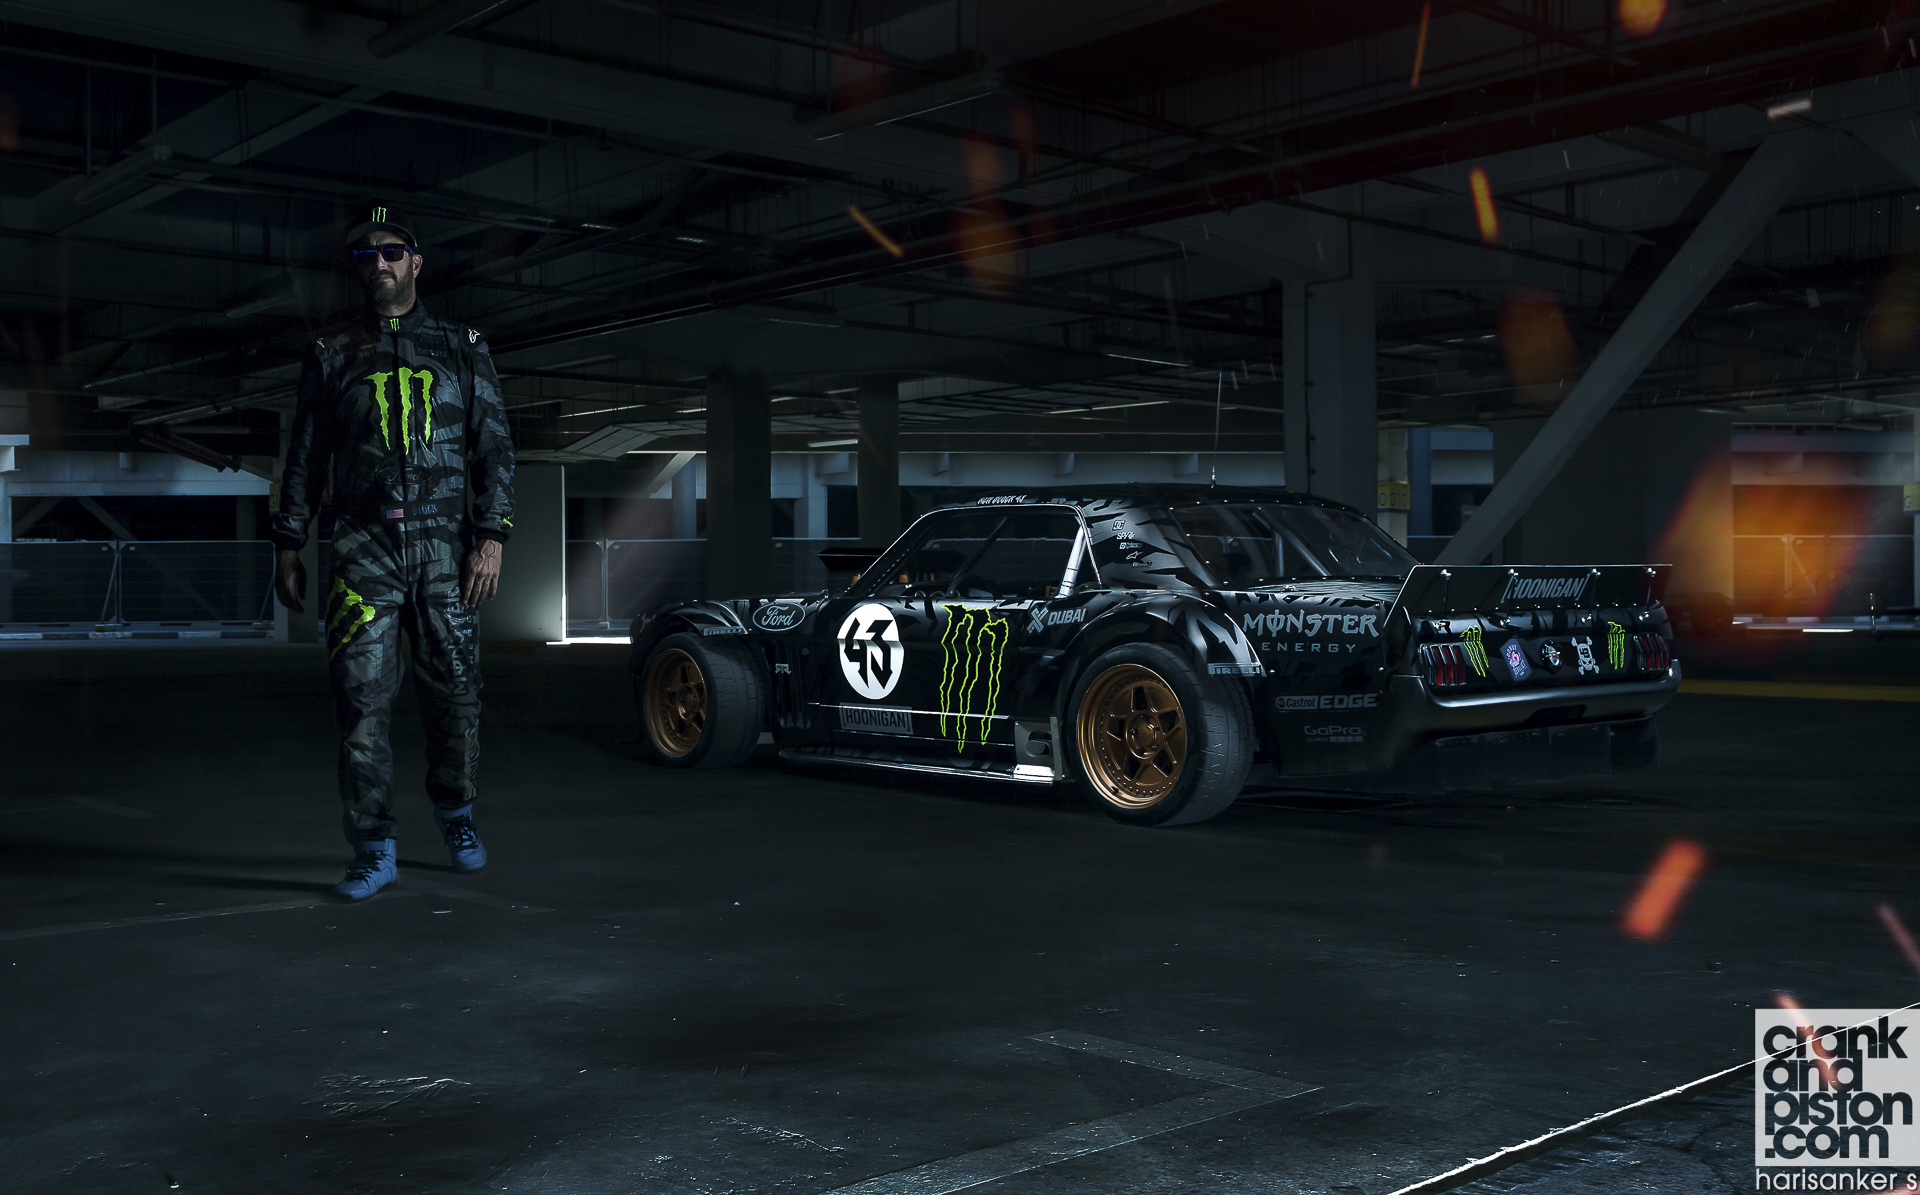 Ken Block Cars Wallpaper Poster Heroes No 2 Ken Block S Hoonicorn